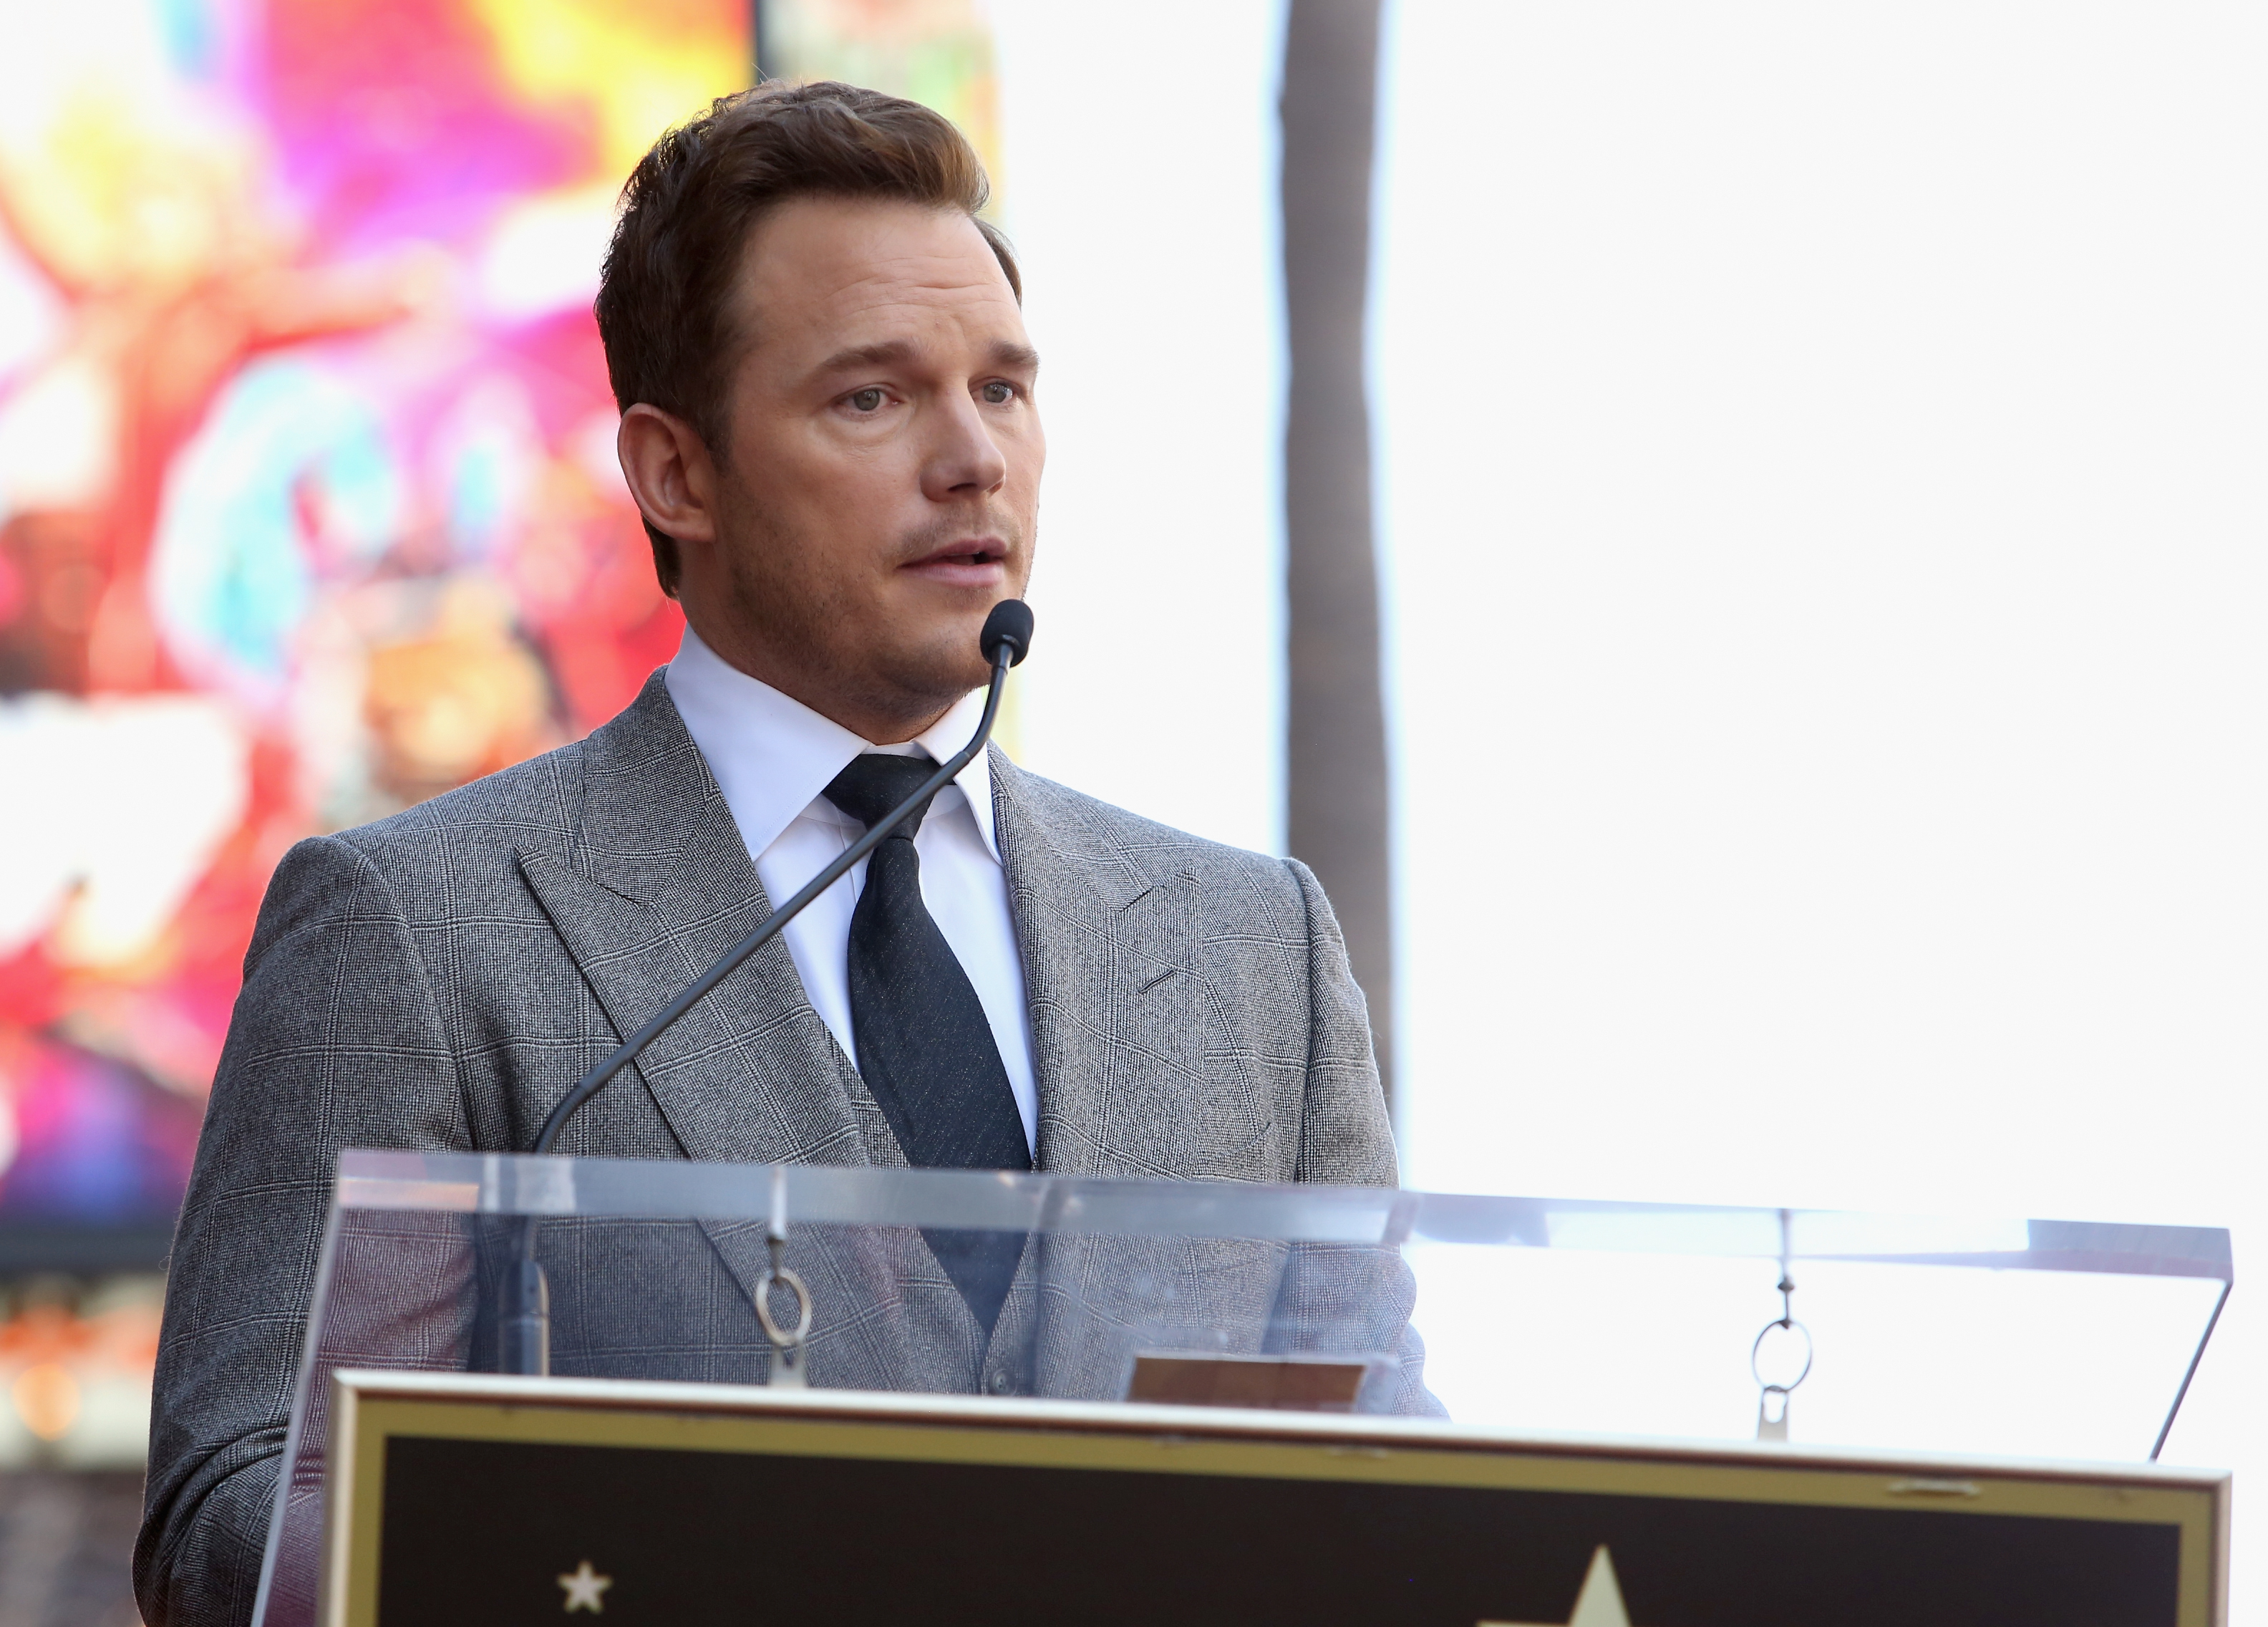 Chris Pratt said sorry about a not-so-thoughtful comment he made, and that's cool